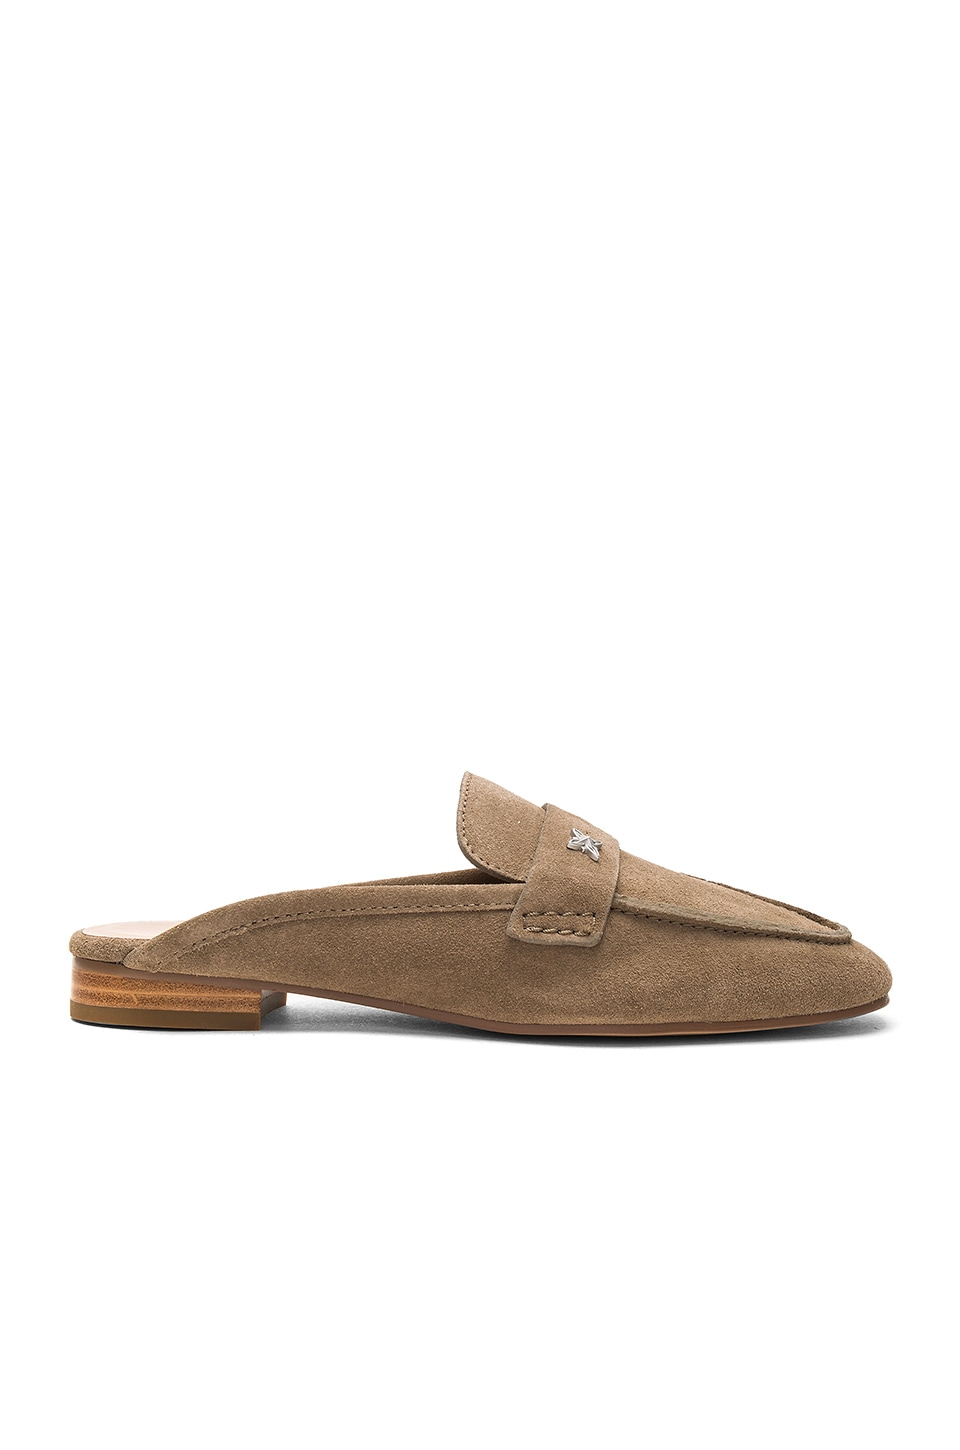 BCBGeneration Sabrina Slide in Taupe